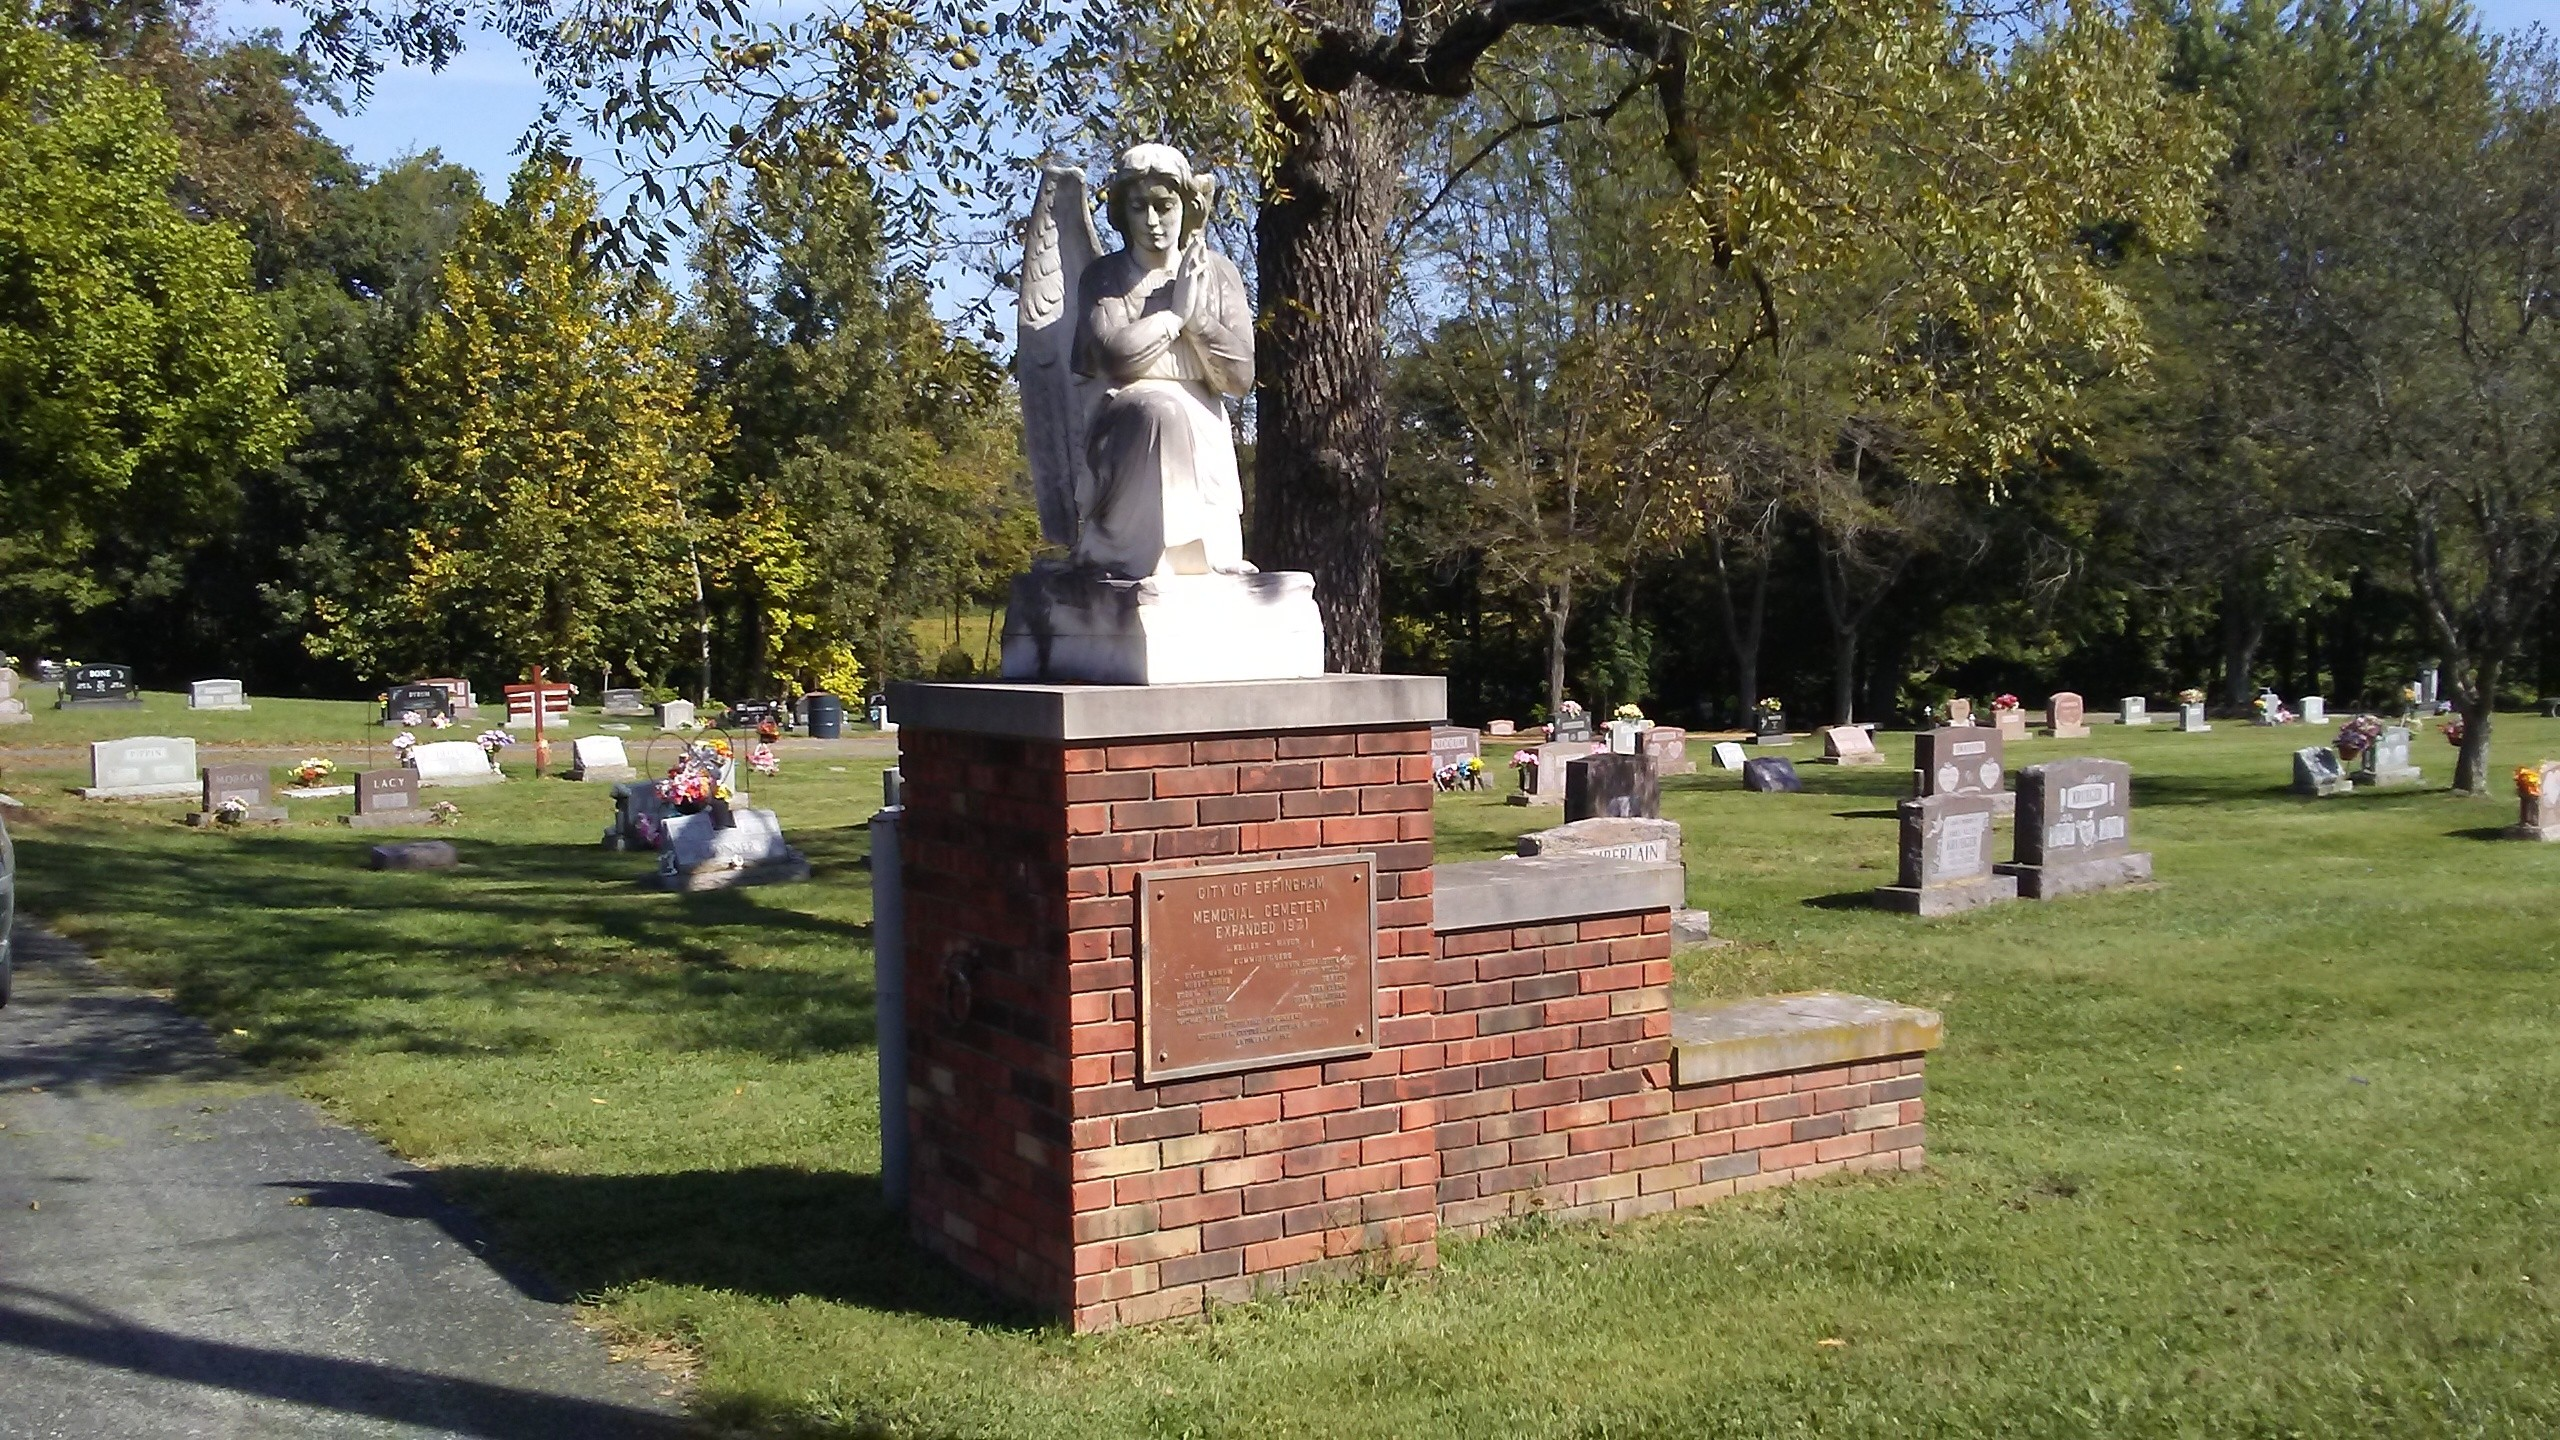 Thefts Occur at Oakridge Cemetery Over the Course of Two Days